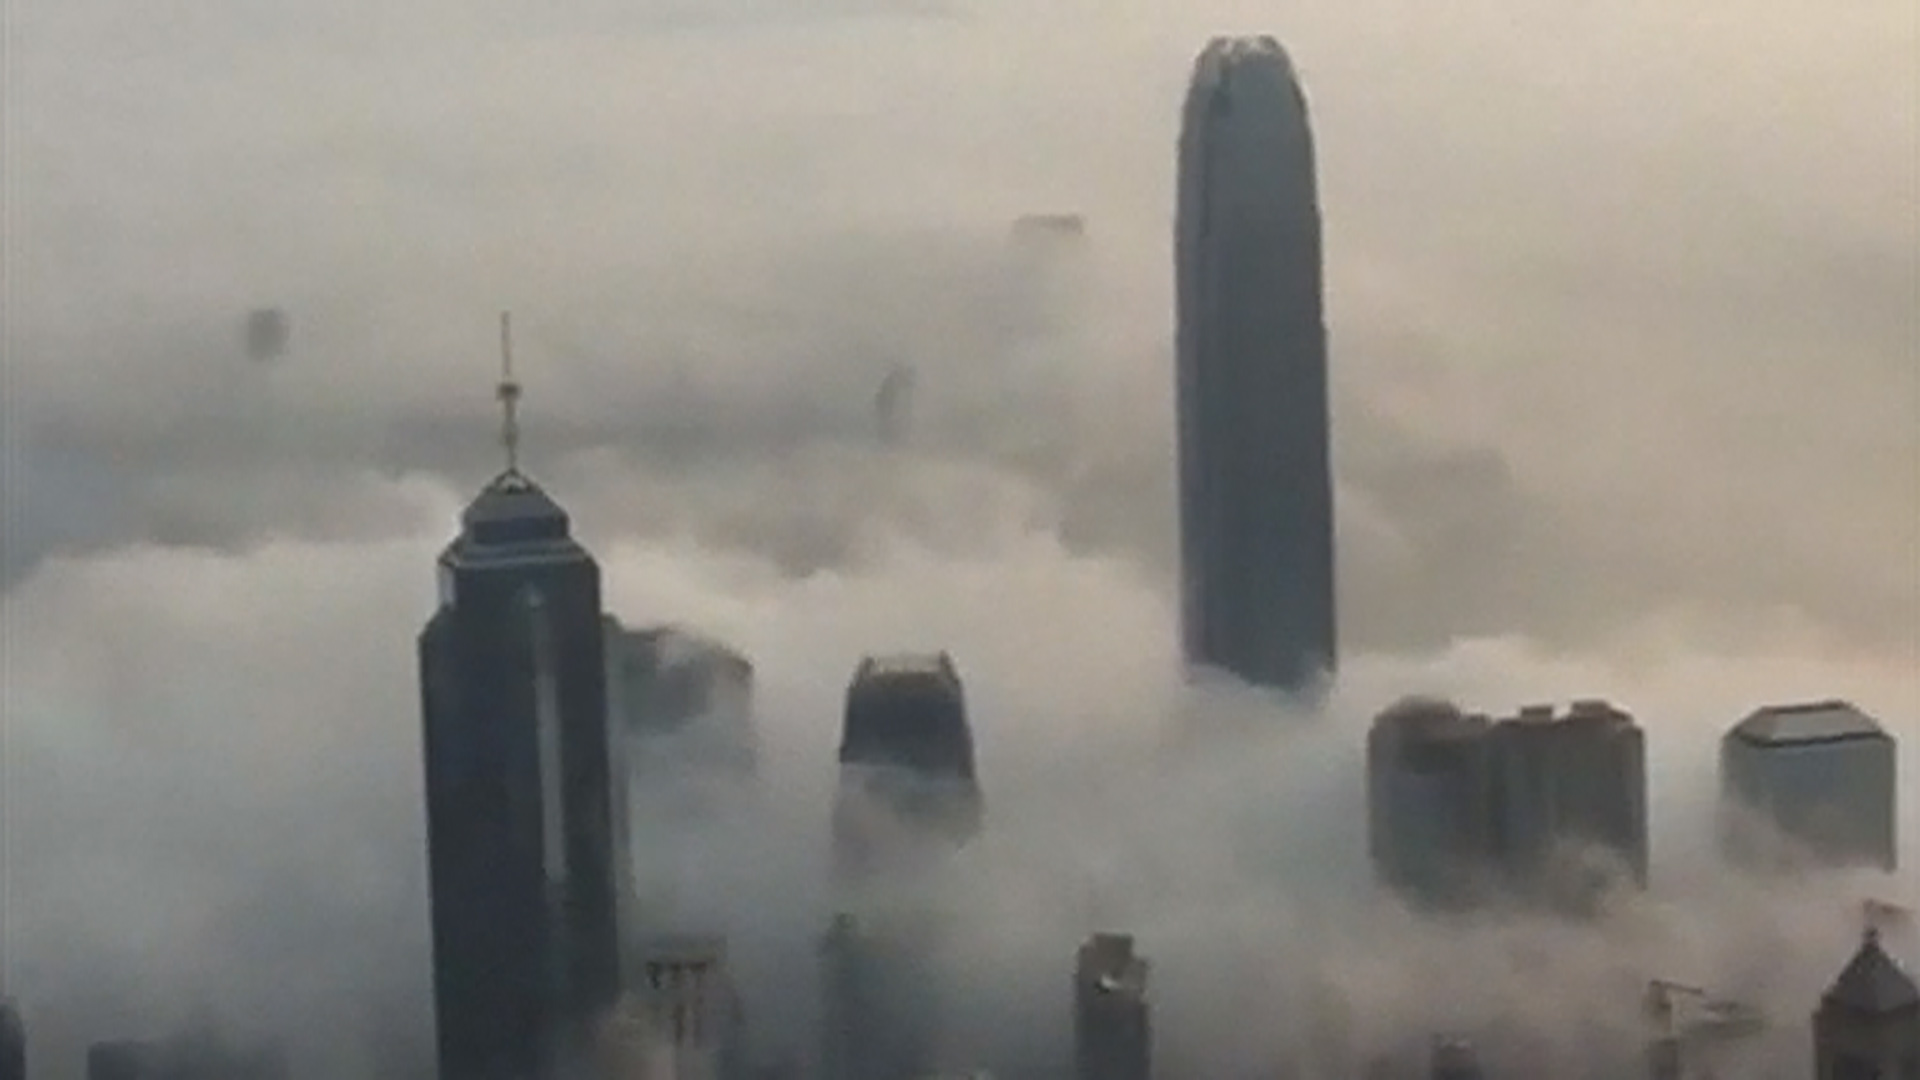 Best Quality Gas >> Dense Fog Shrouds Hong Kong's Skyline